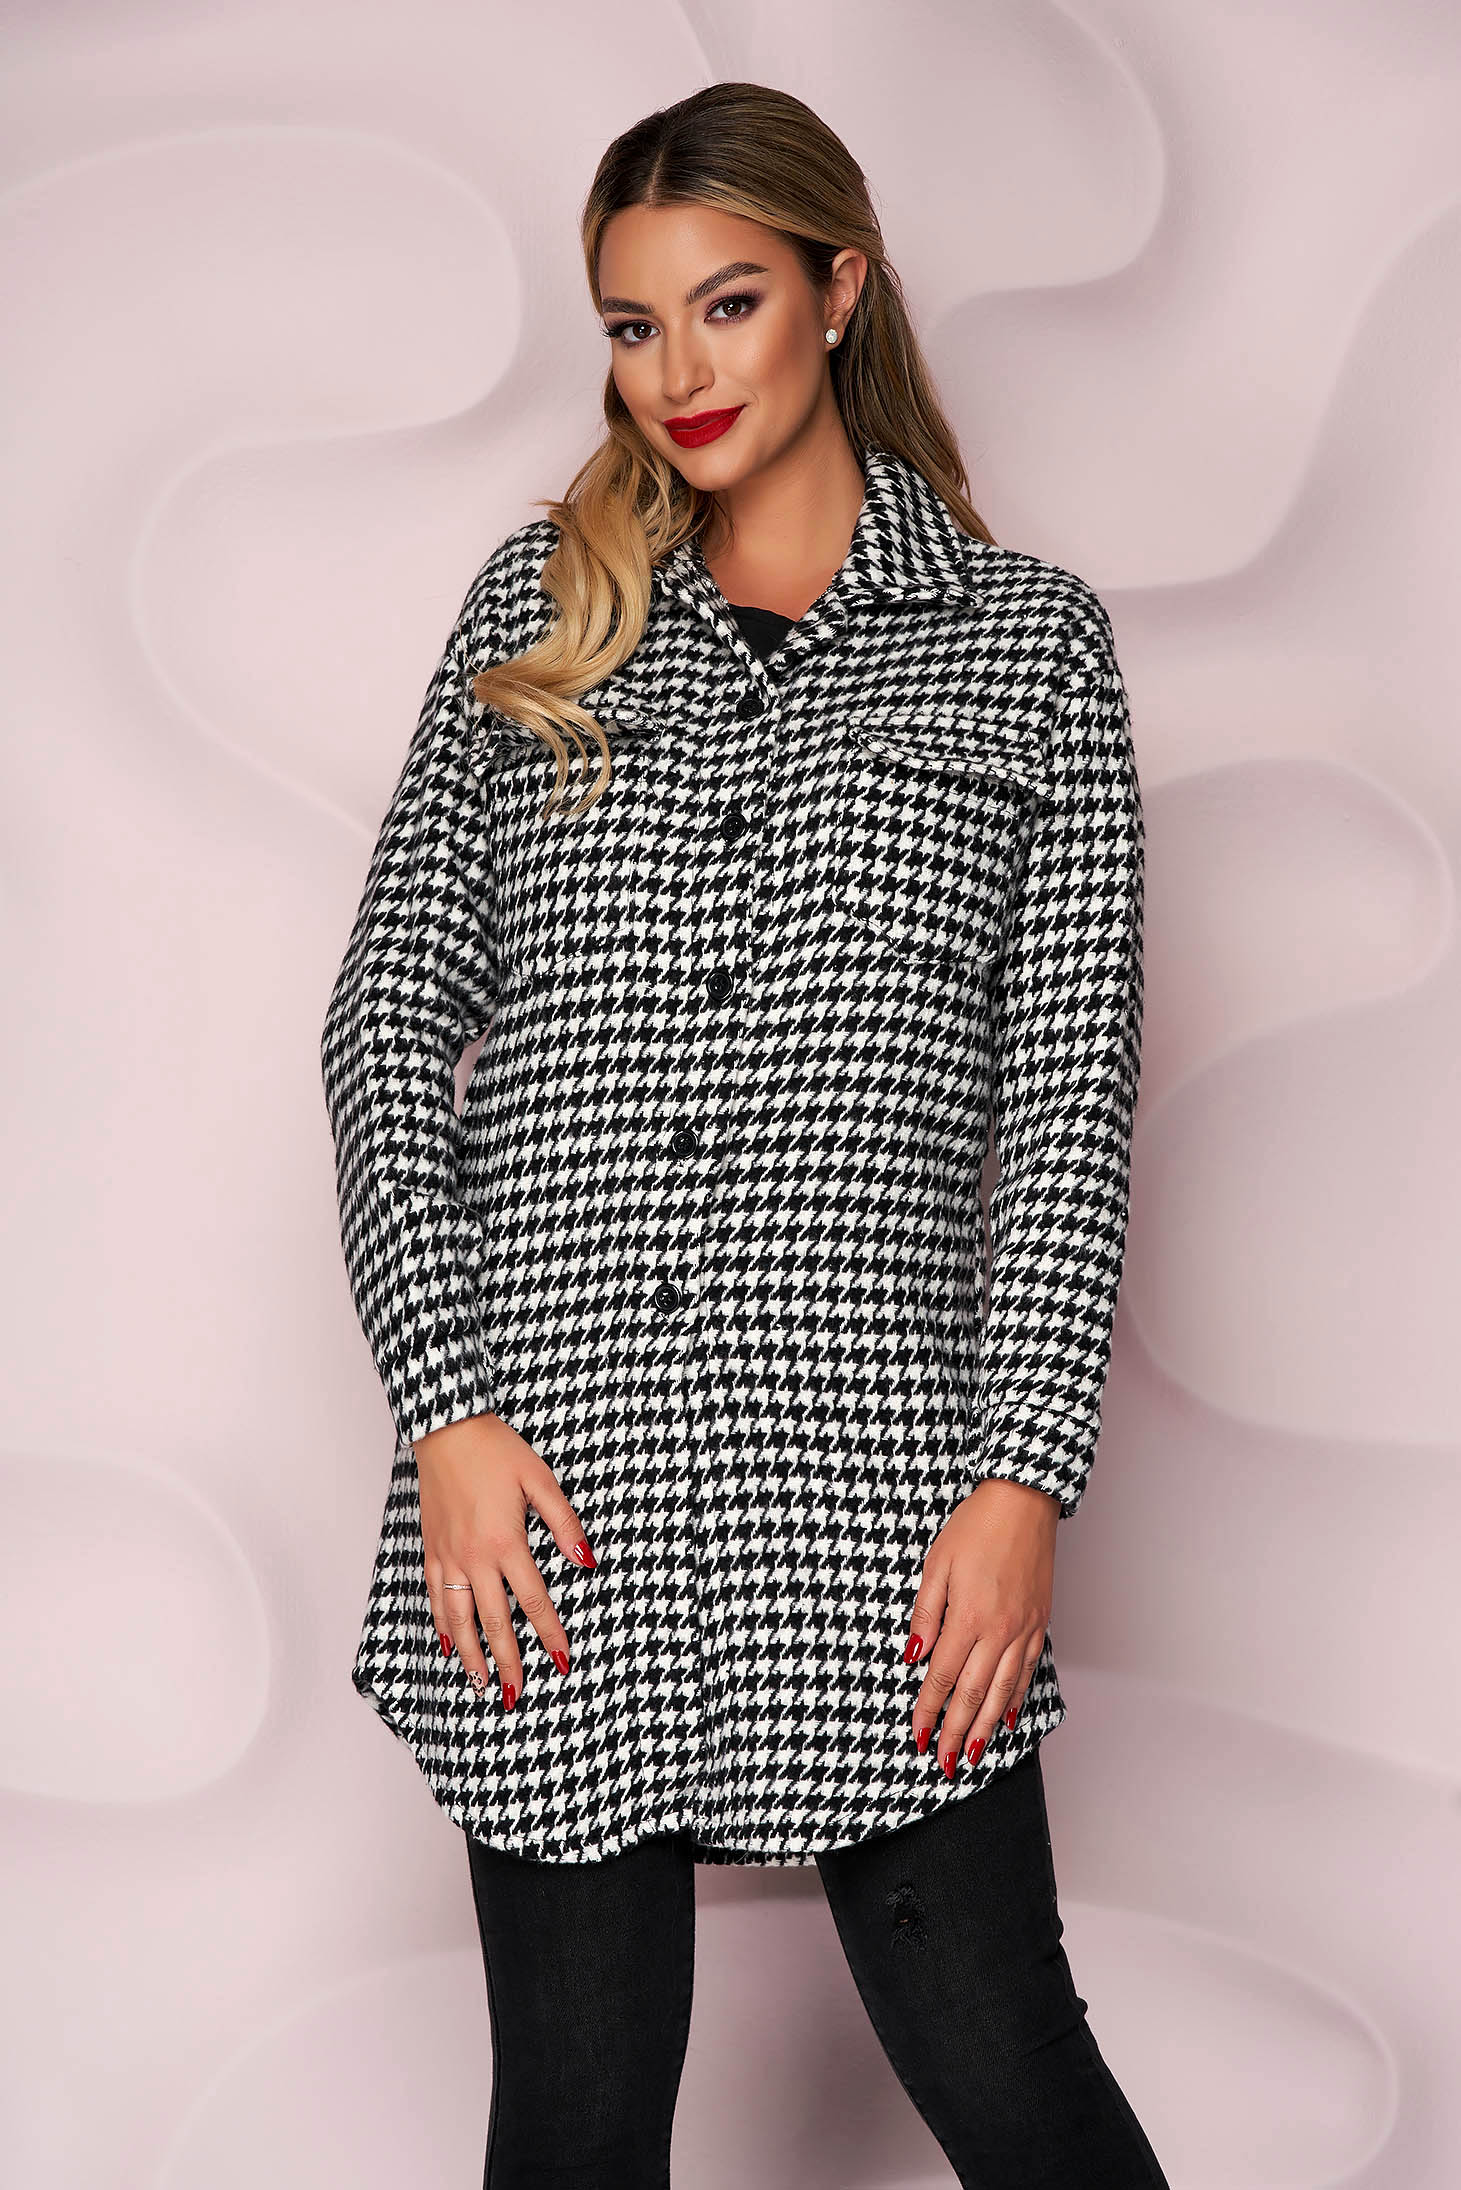 Overcoat thick fabric with front pockets without clothing soft fabric